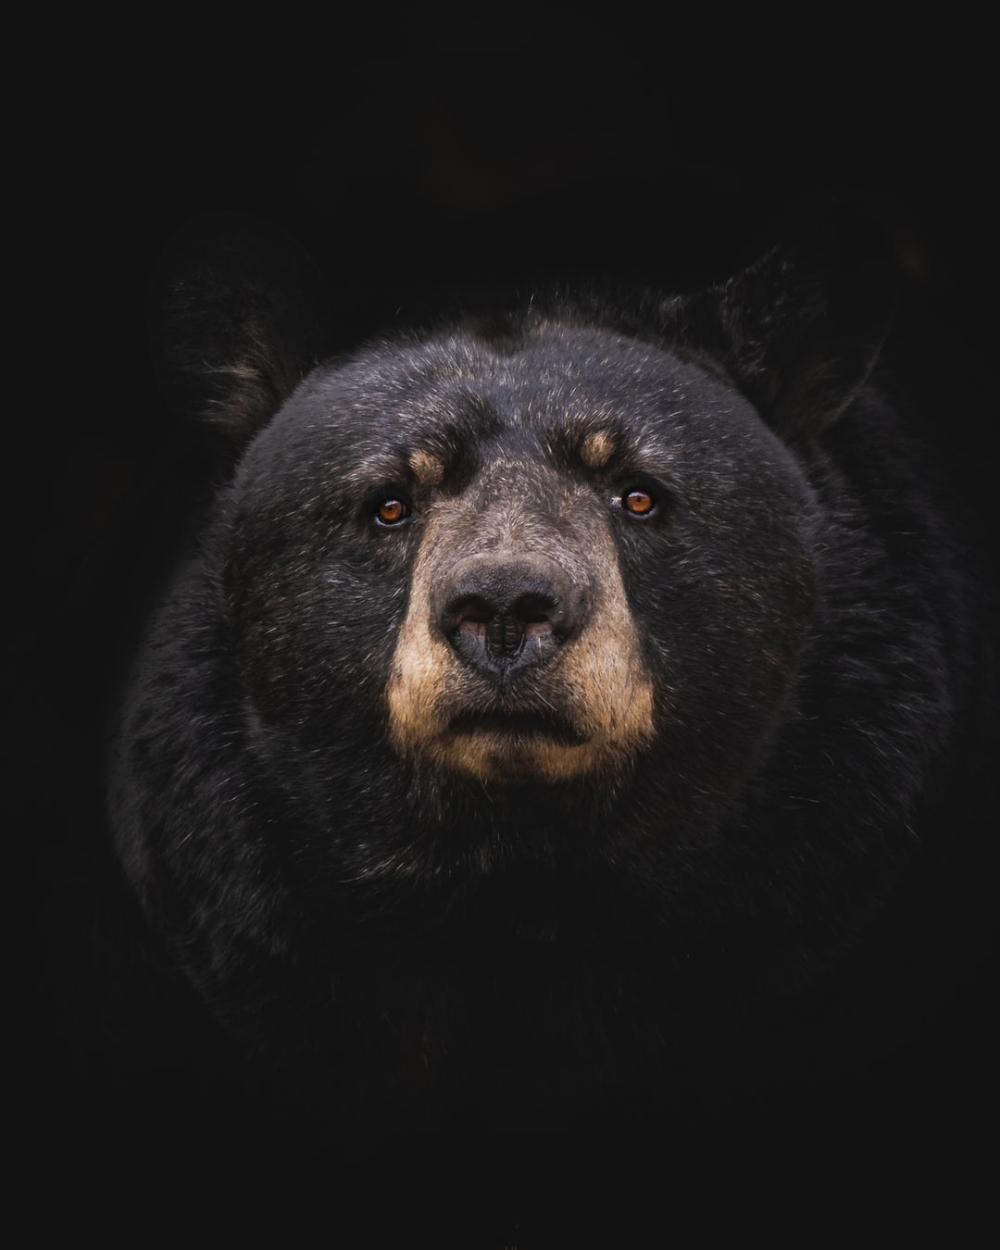 Black Bear Download This Photo By Marc Olivier Jodoin On Unsplash Black Bear Bear Pictures Animals